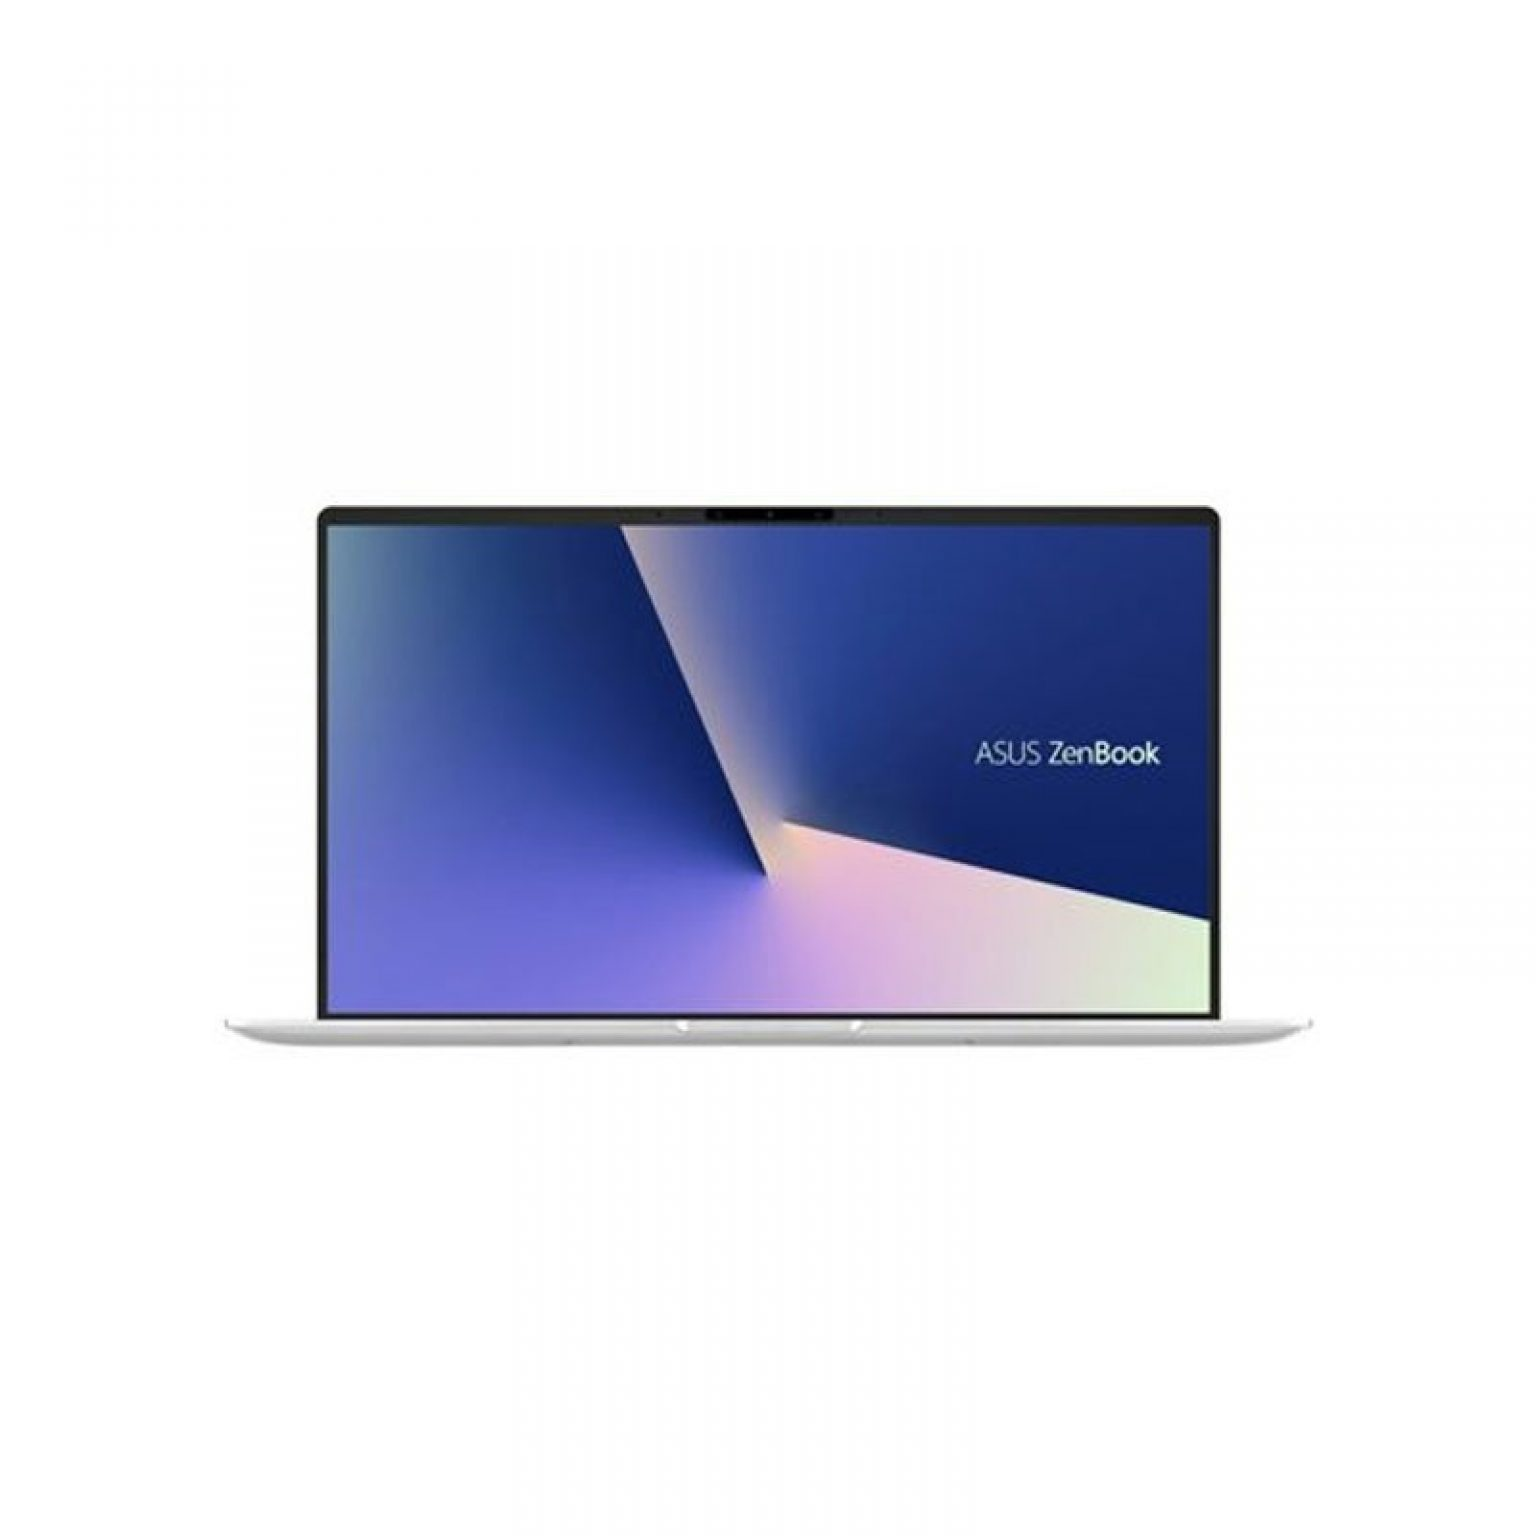 ASUS - ZenBook Classic UX333FN-A7602T (i7-8565U/16GB RAM/512GB SSD/MX150/13.3inch/Win10SL/Icicle Silver)